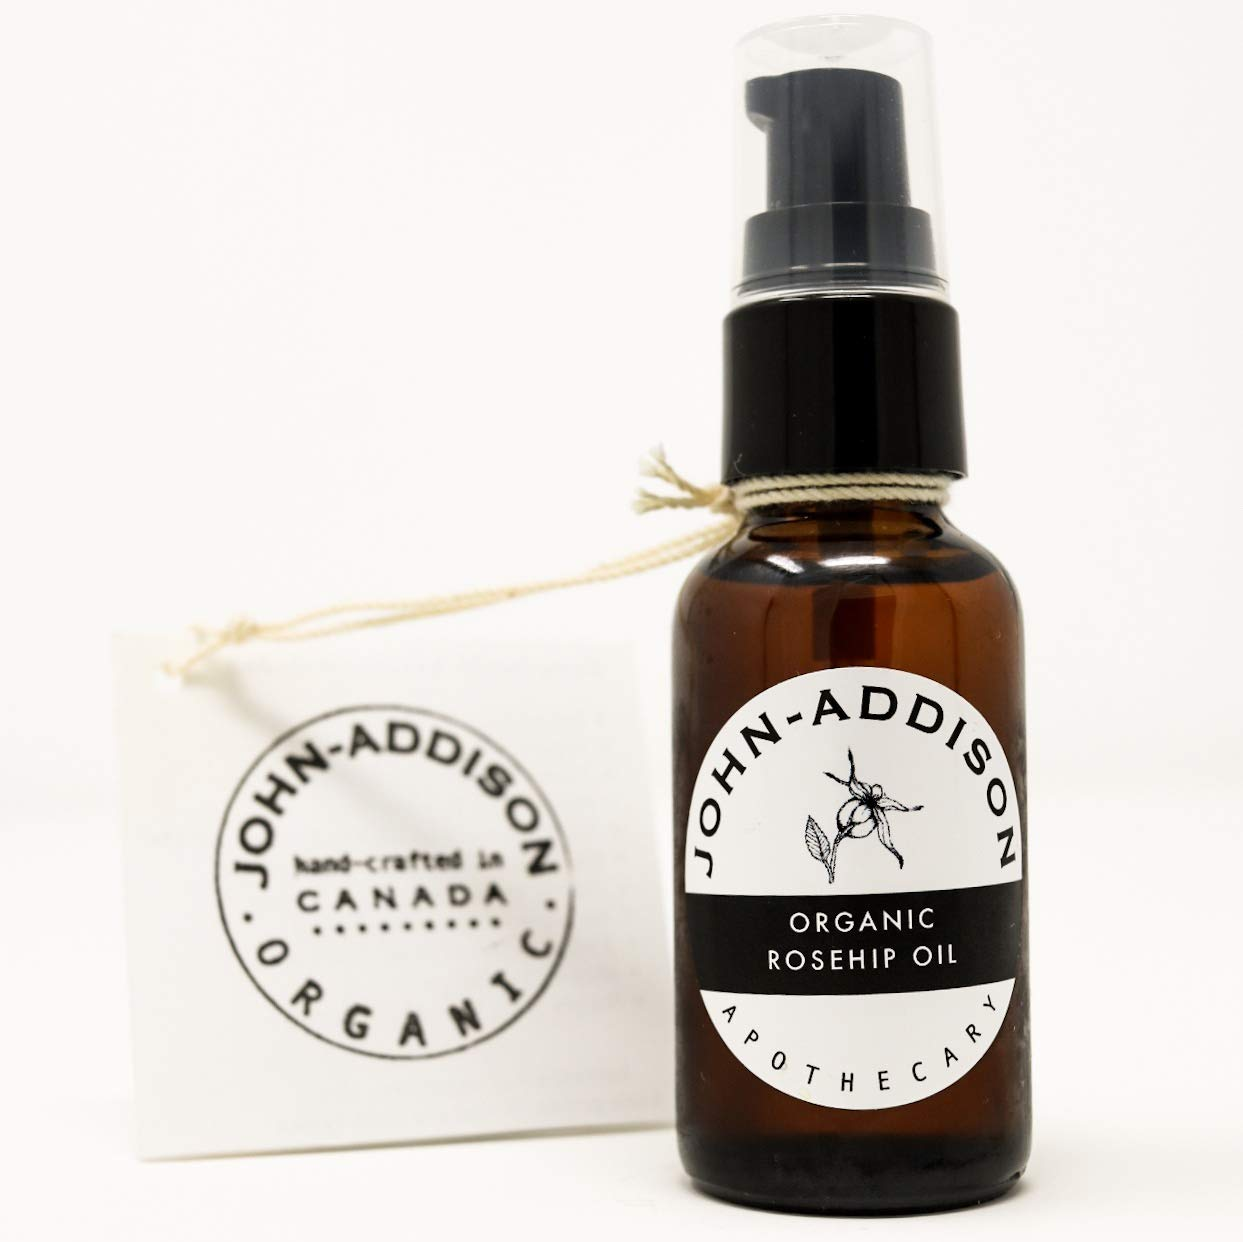 ORGANIC ROSEHIP OIL by JOHN ADDISON - Cold Pressed Carrier Oil - Face Body Hair Cuticles - Prevents Stretch Marks - Treats Dry Irritated Ashy Looking Skin - Hydrates Moisturizes Softens Smooths Soothes - Non Scented - Amber Glass Bottle - 30ml